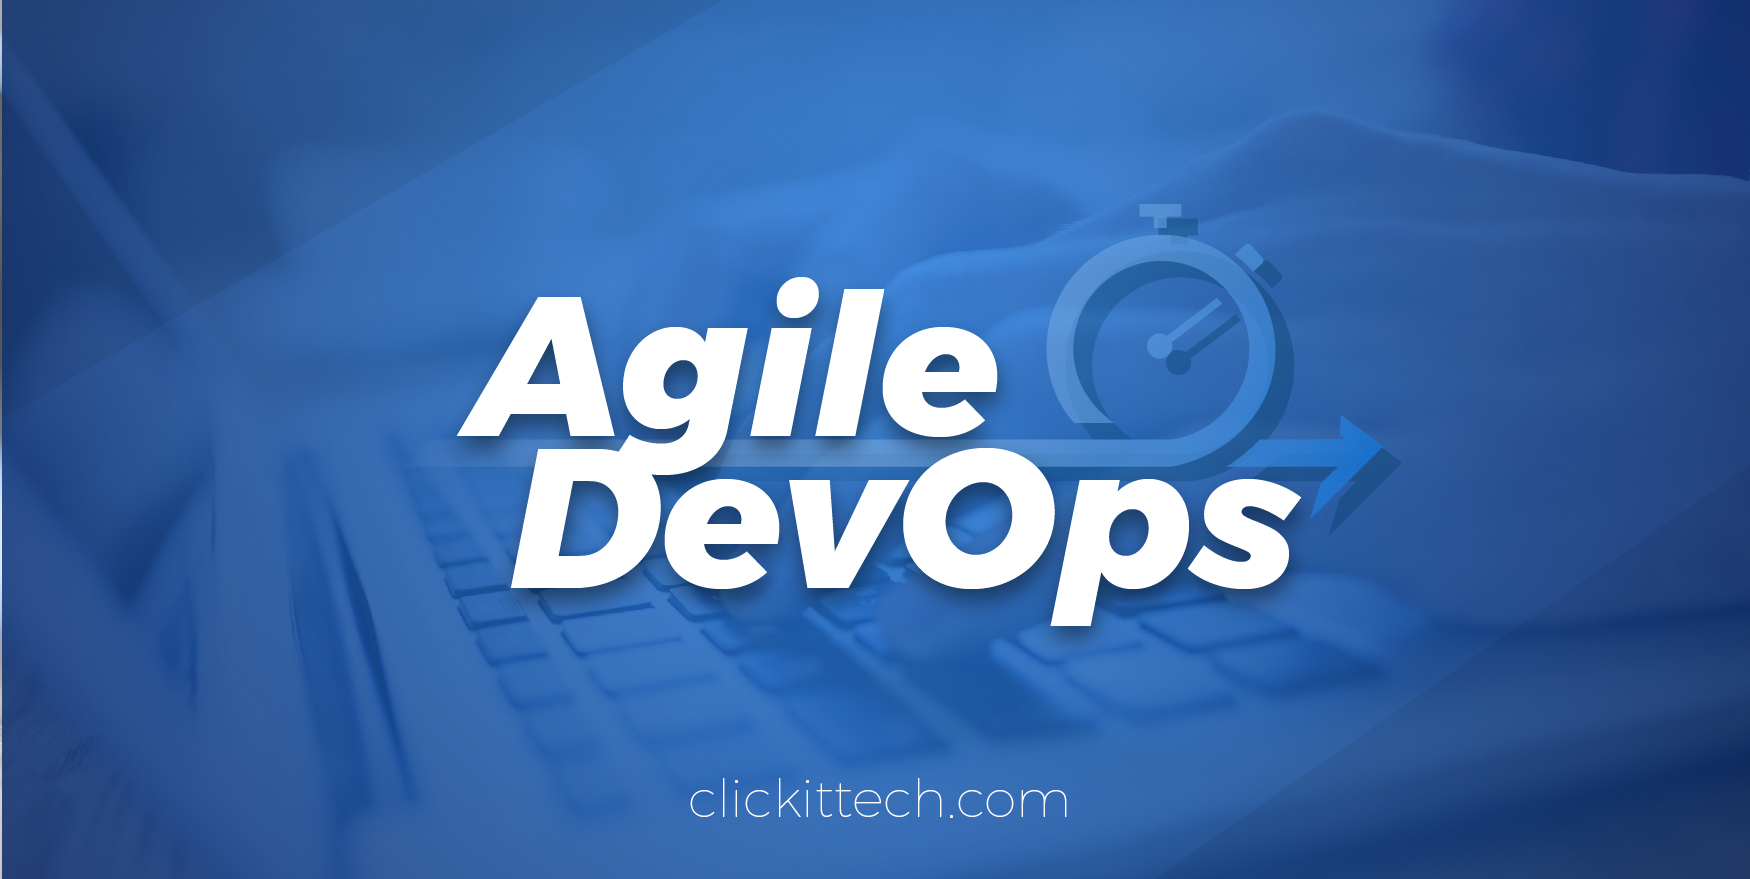 Agile DevOps: What is it and Why is important for my company